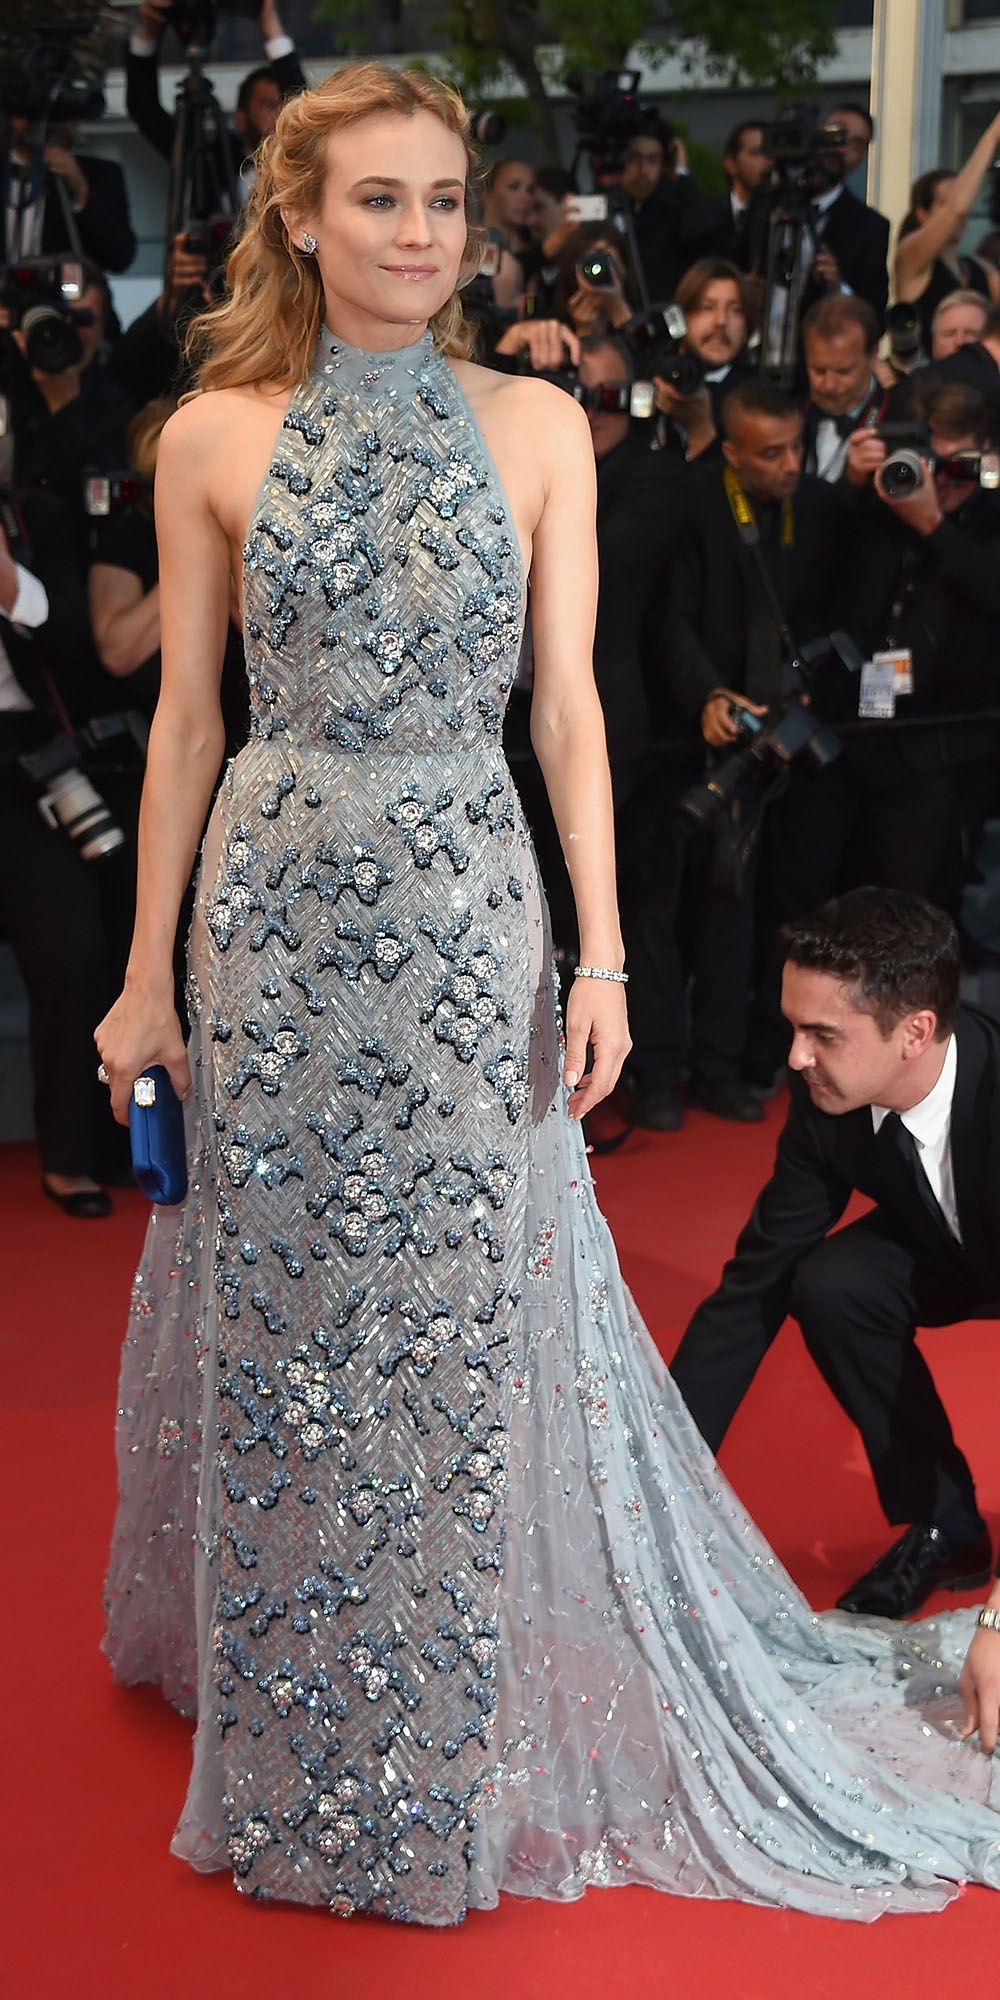 The Best Of The 2015 Cannes Film Festival Red Carpet